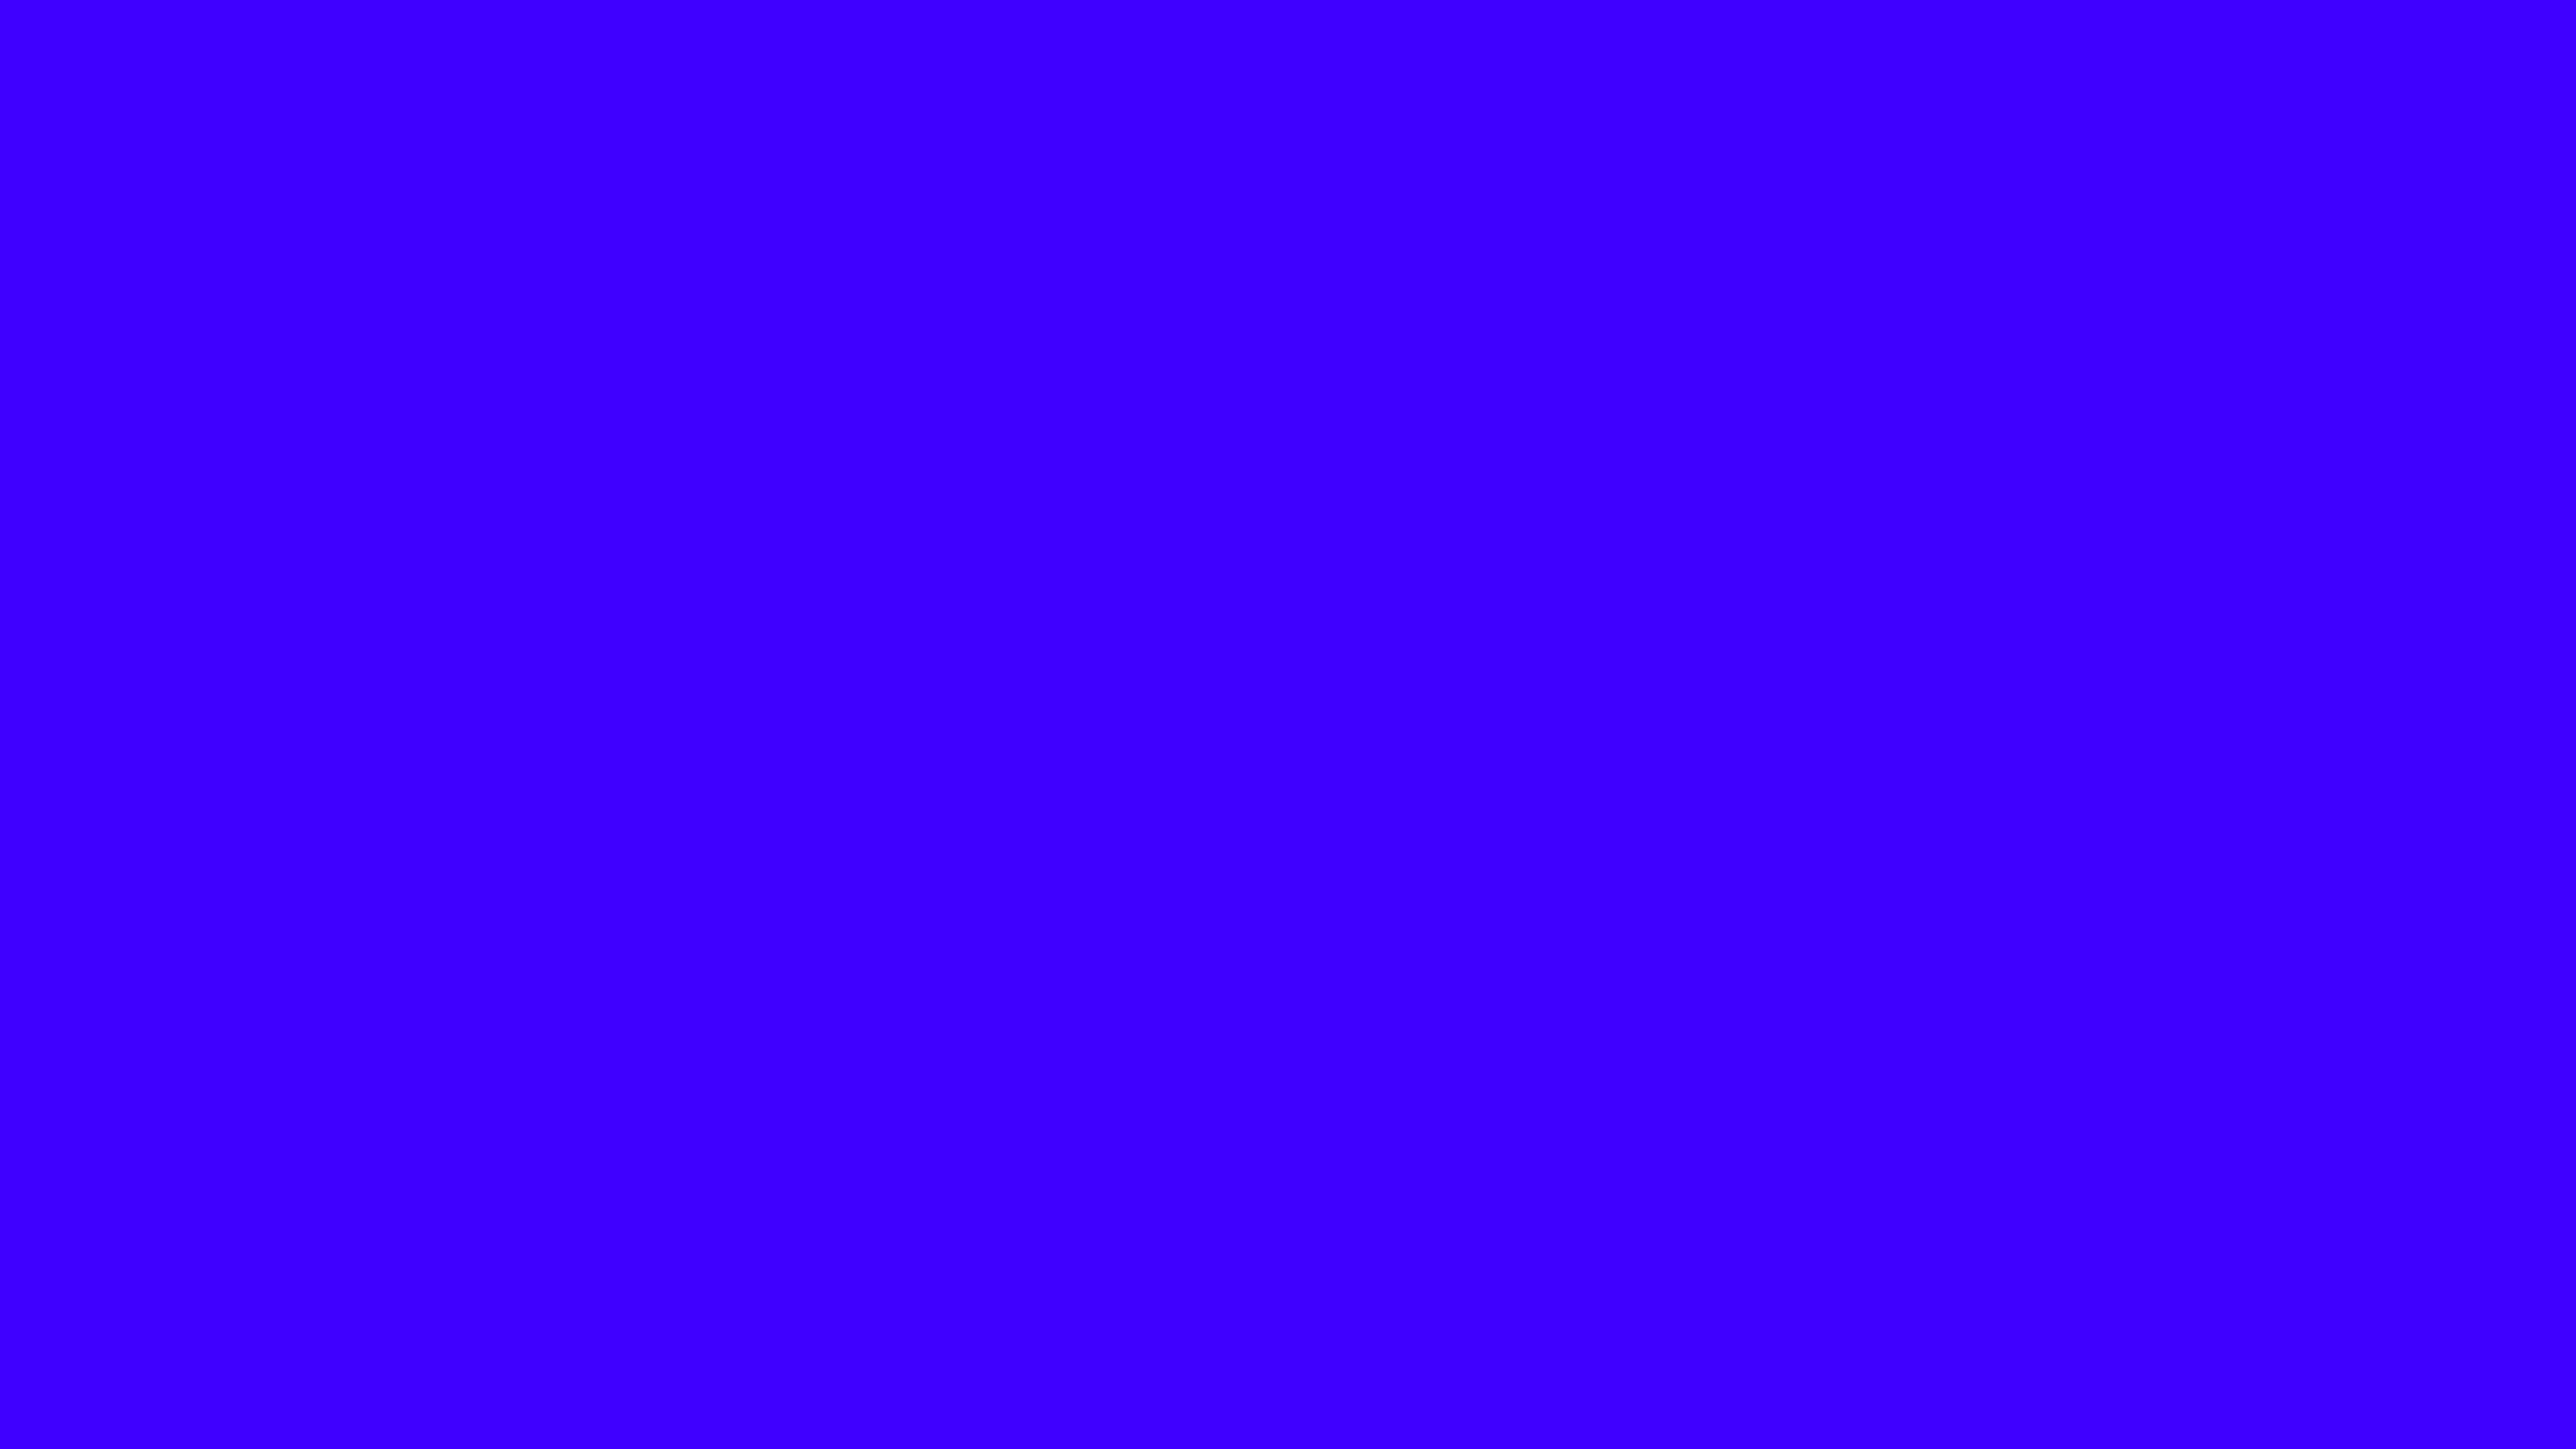 3840x2160 Electric Ultramarine Solid Color Background 3840x2160